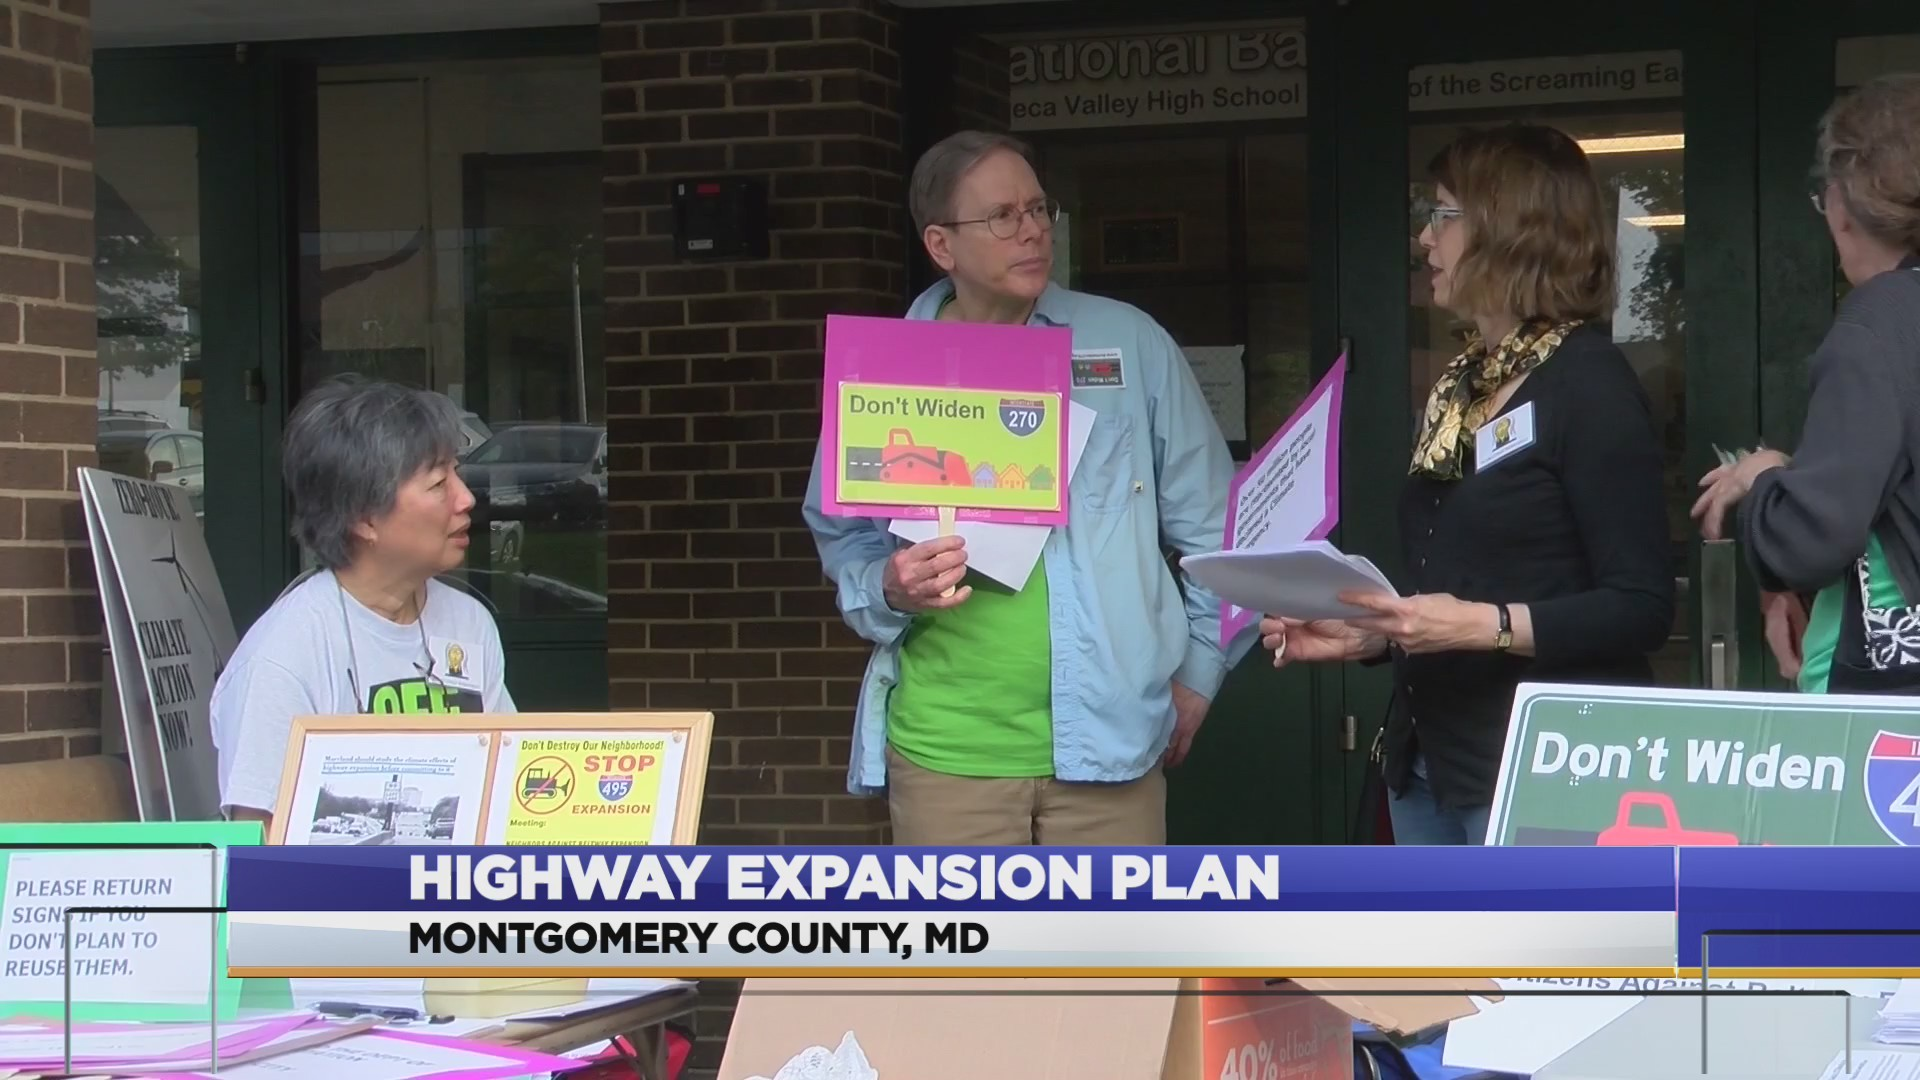 Meeting held for proposed I-270 and I-495 expansion plan